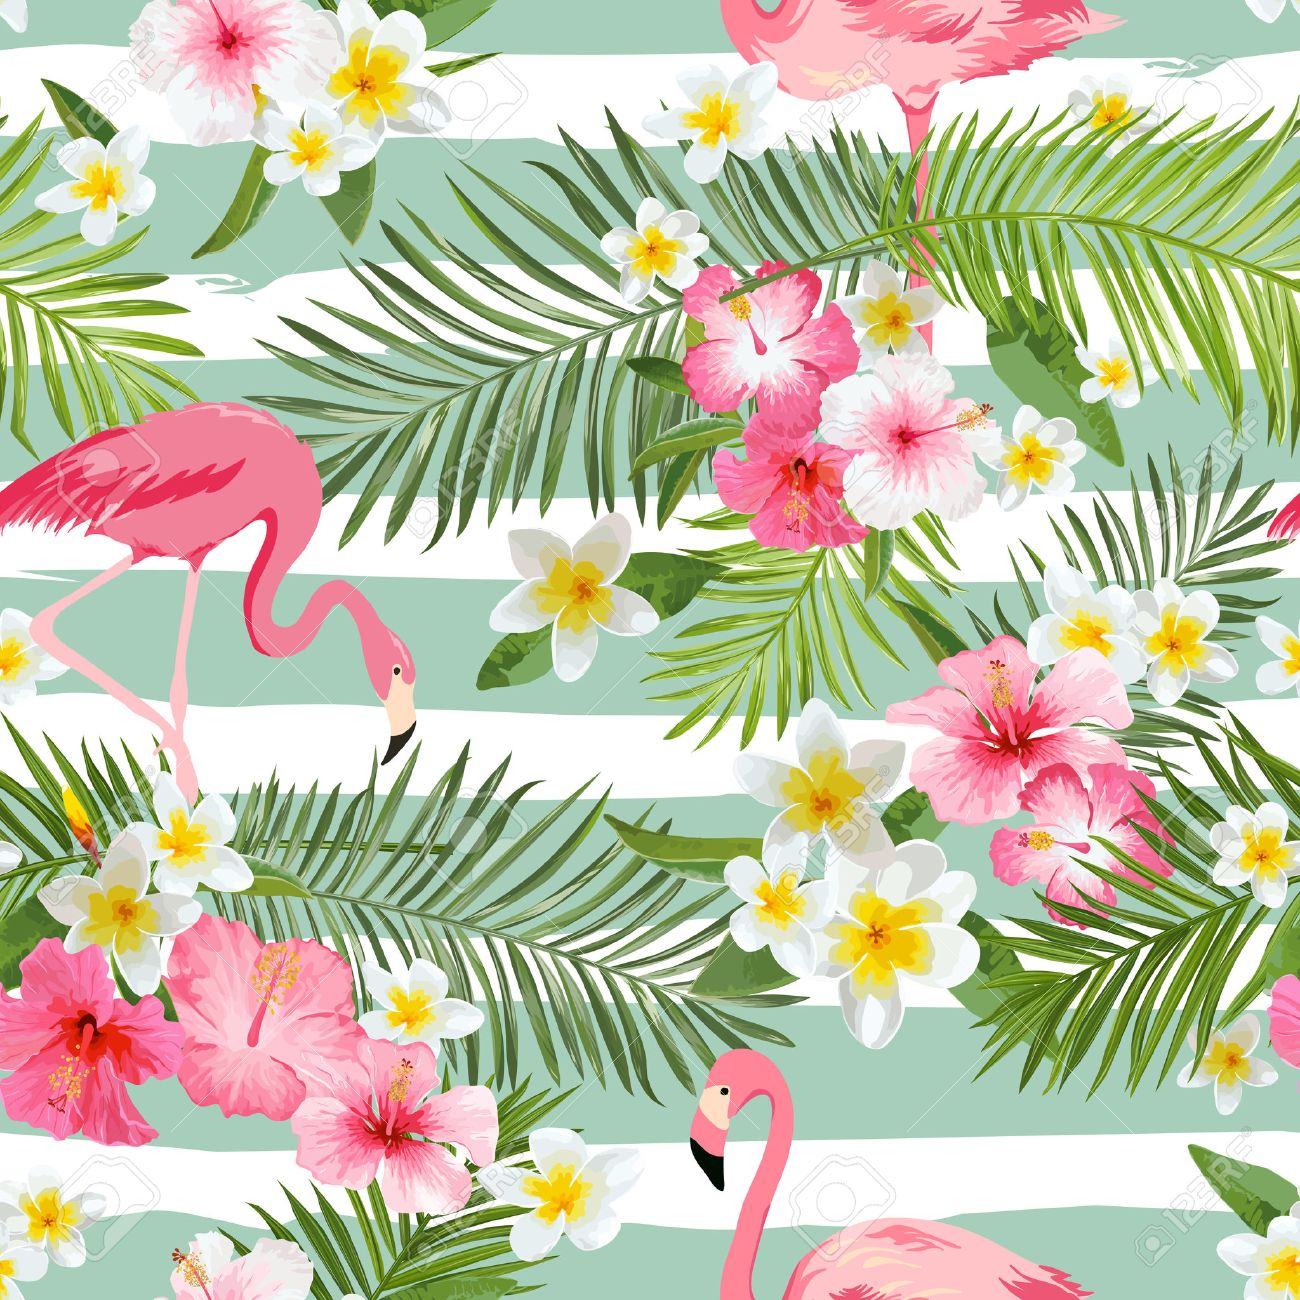 Flamingo Background Tropical Flowers Background Vintage Seamless